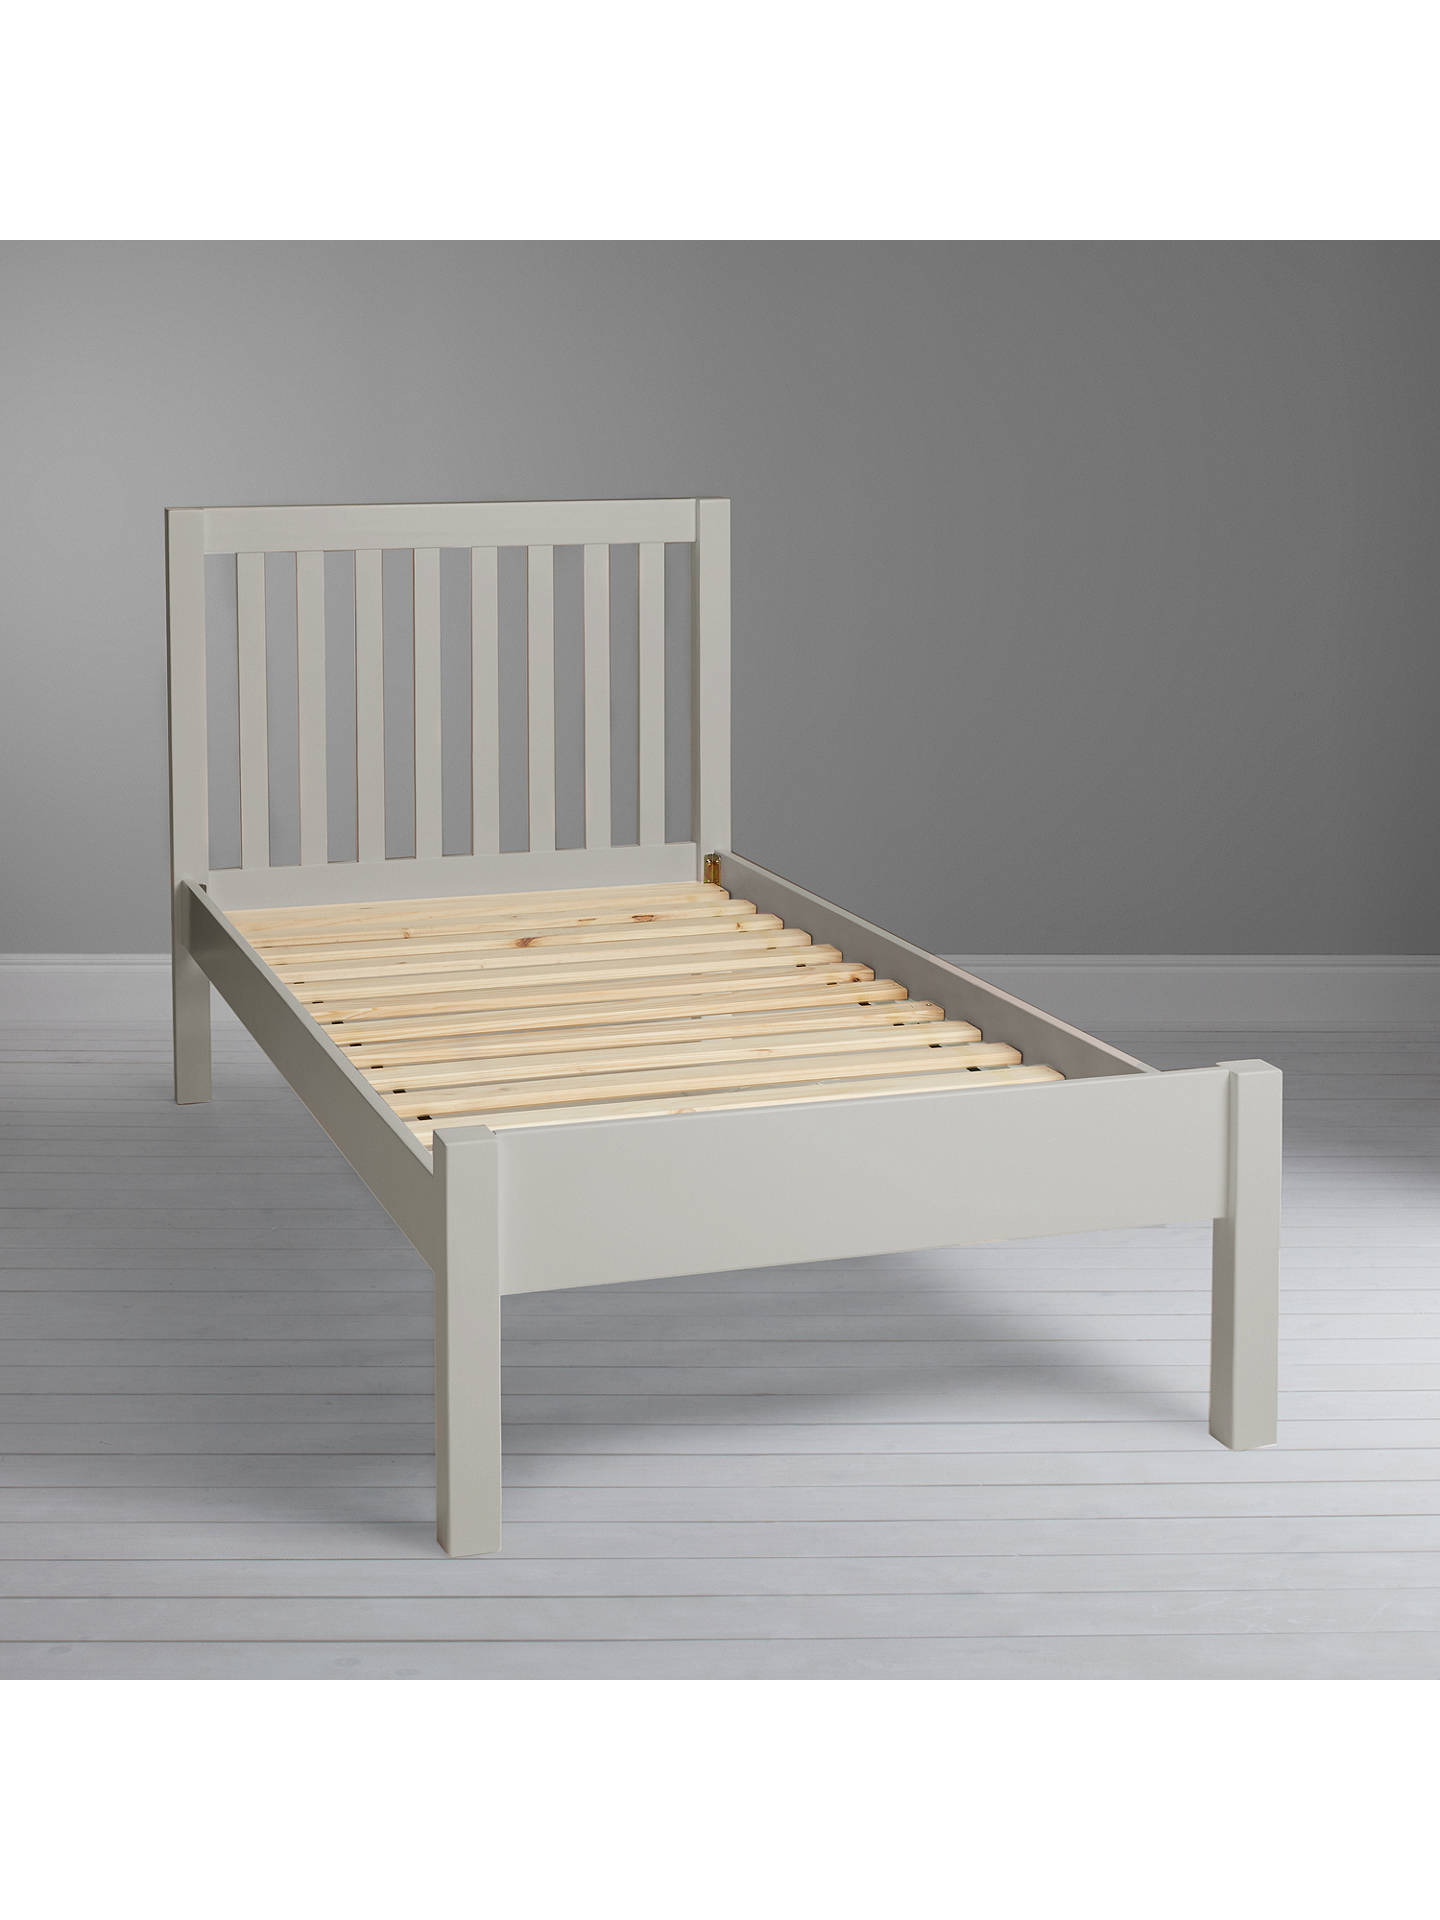 BuyJohn Lewis & Partners Wilton Child Compliant Bed Frame, Single, Grey Online at johnlewis.com